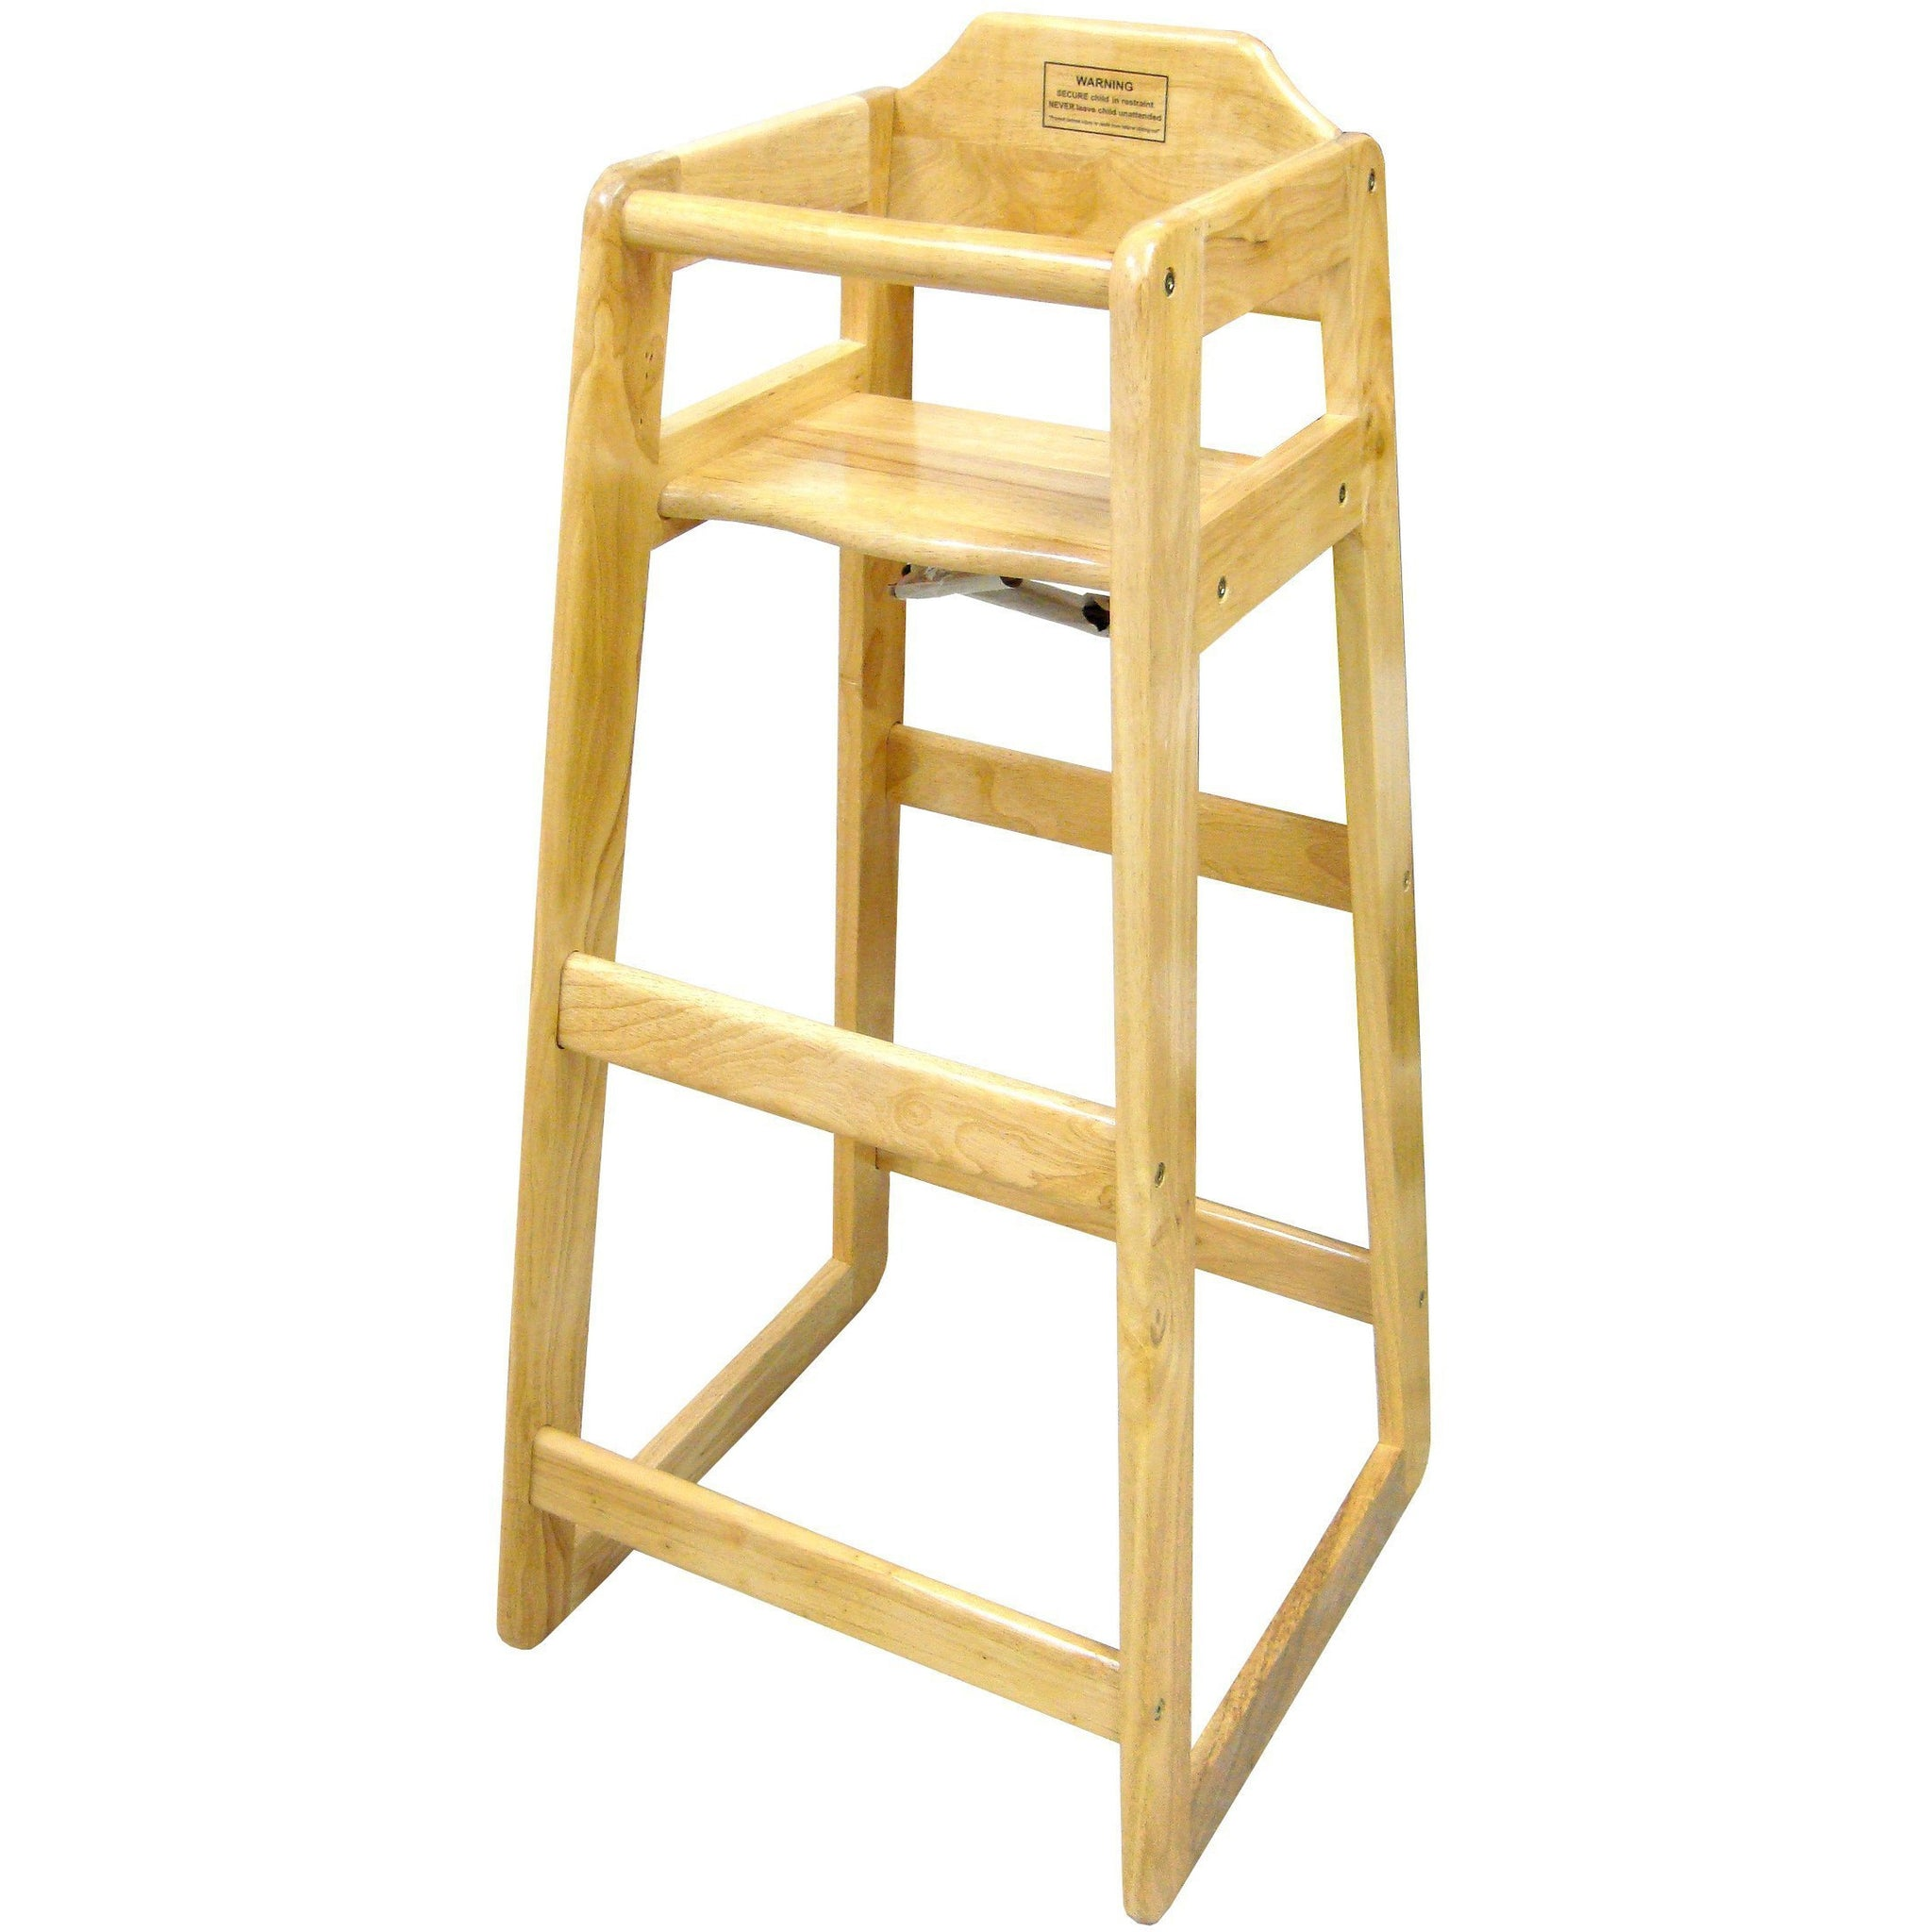 Winco chh 601 natural wood pub high chair counter height kd dining service